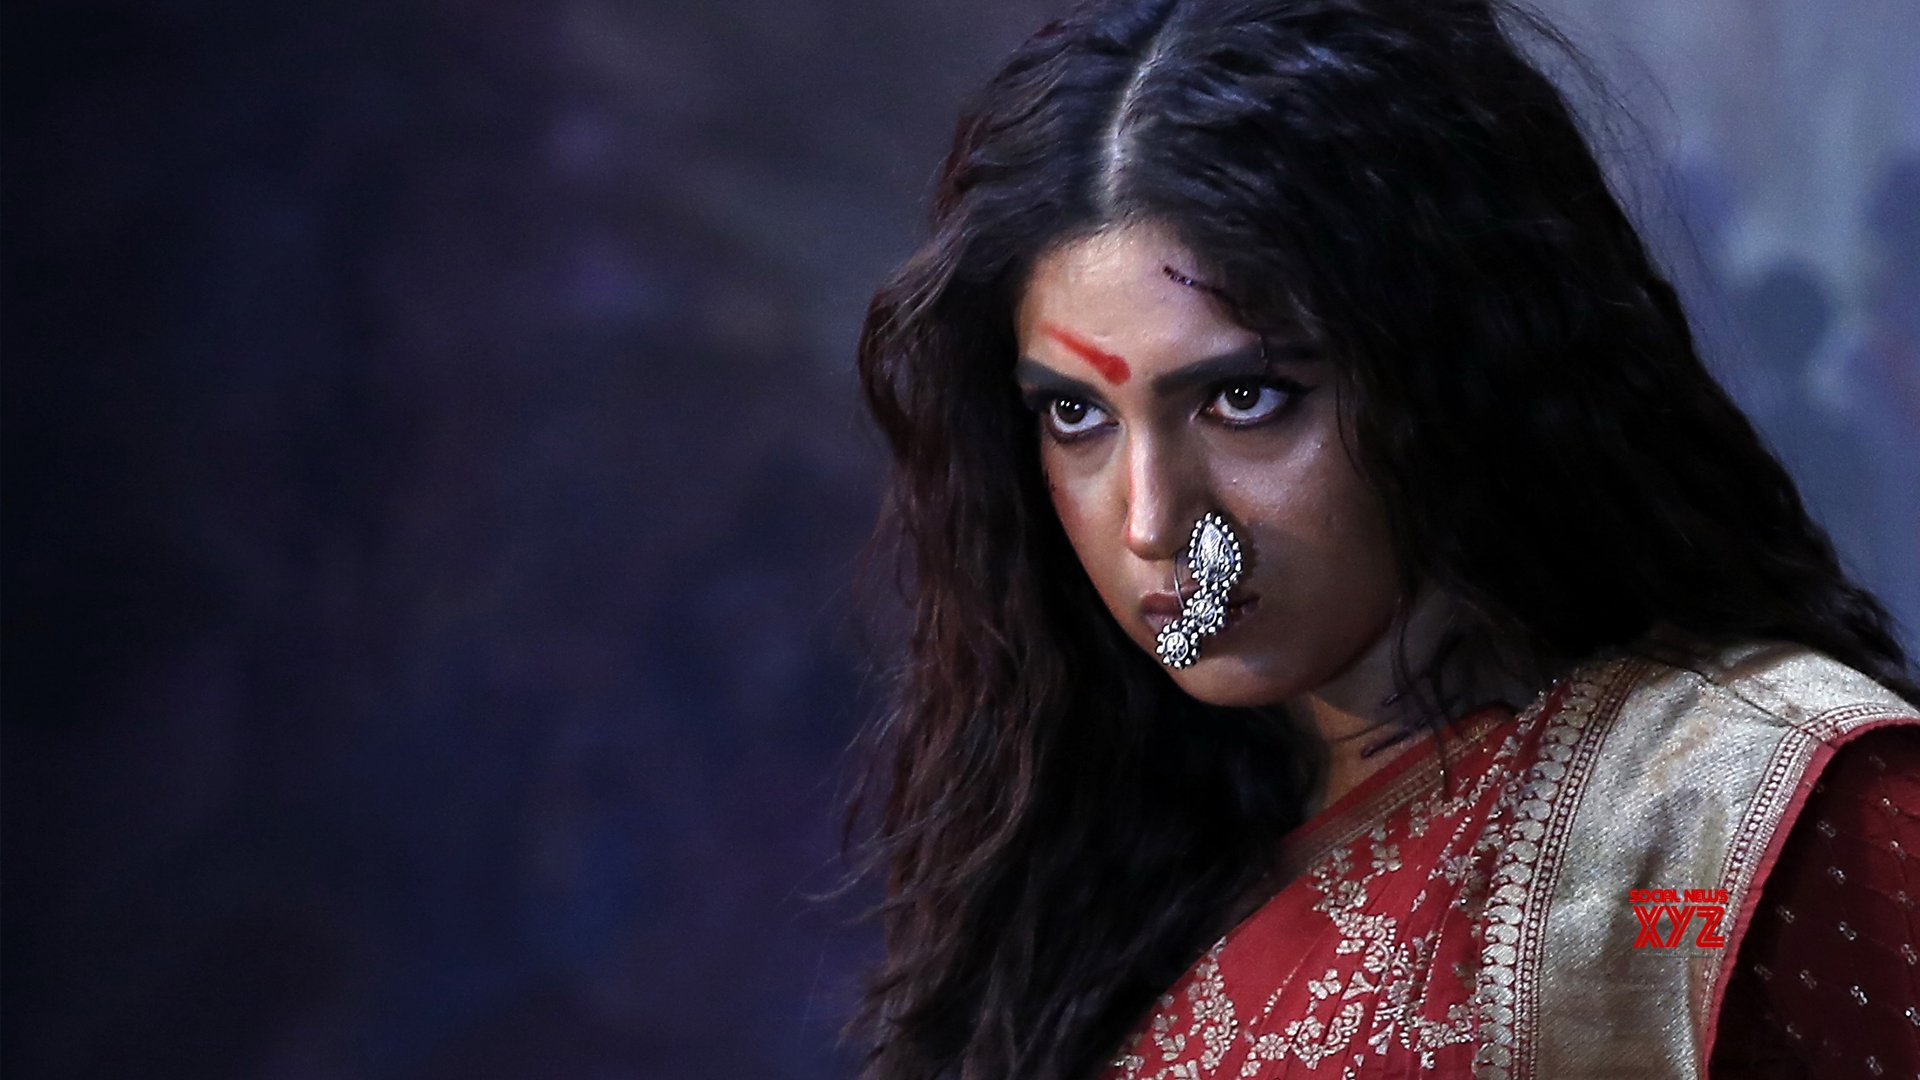 Bhumi Pednekar, Arshad Warsi's Durgamati - The Myth movie is now streaming on Amazon Prime Video - Social News XYZ